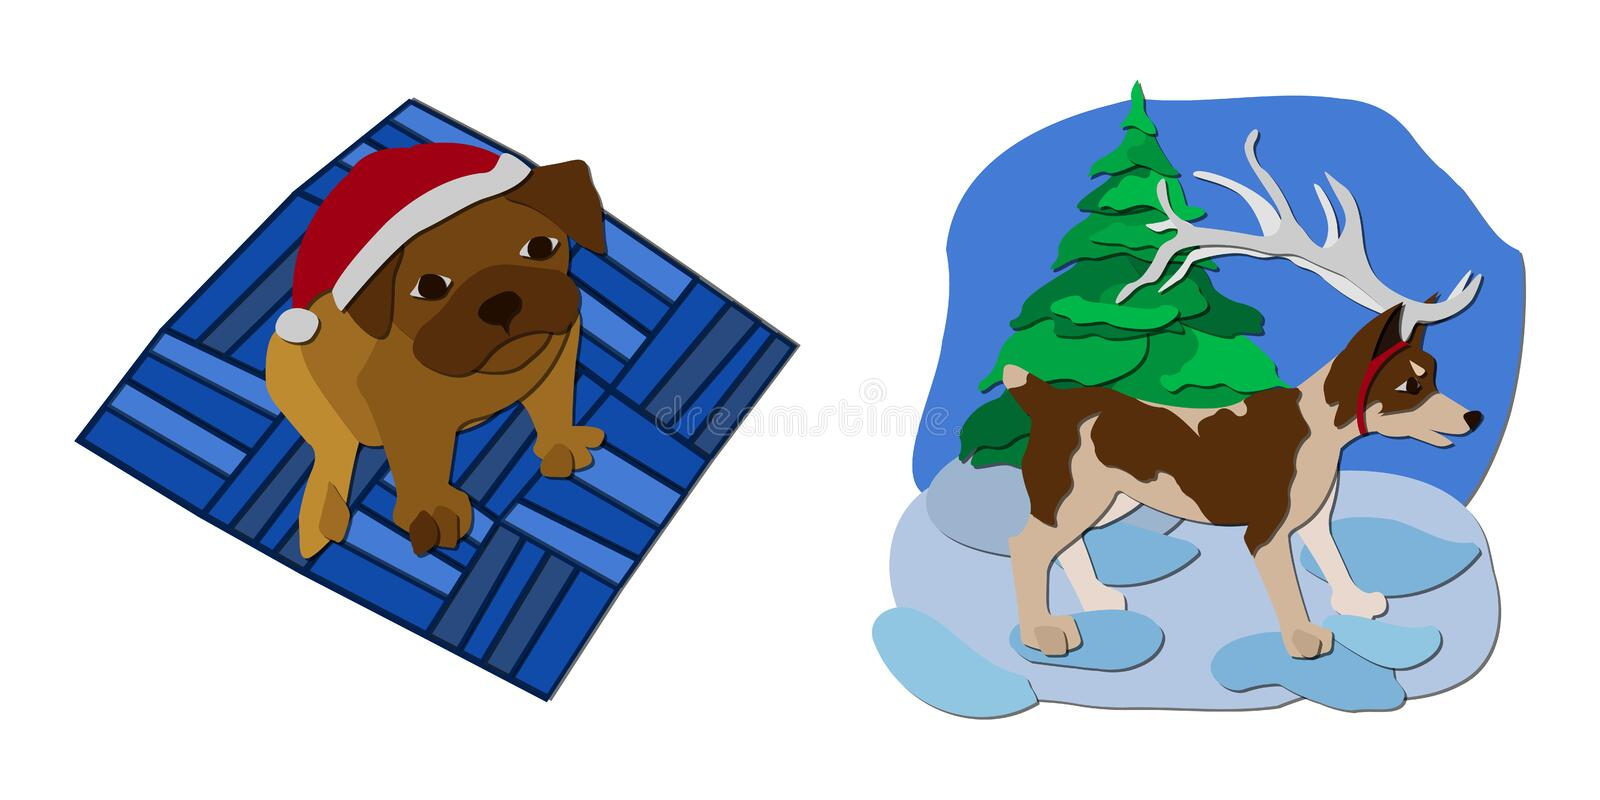 Christmas illustration of a dogs stock image